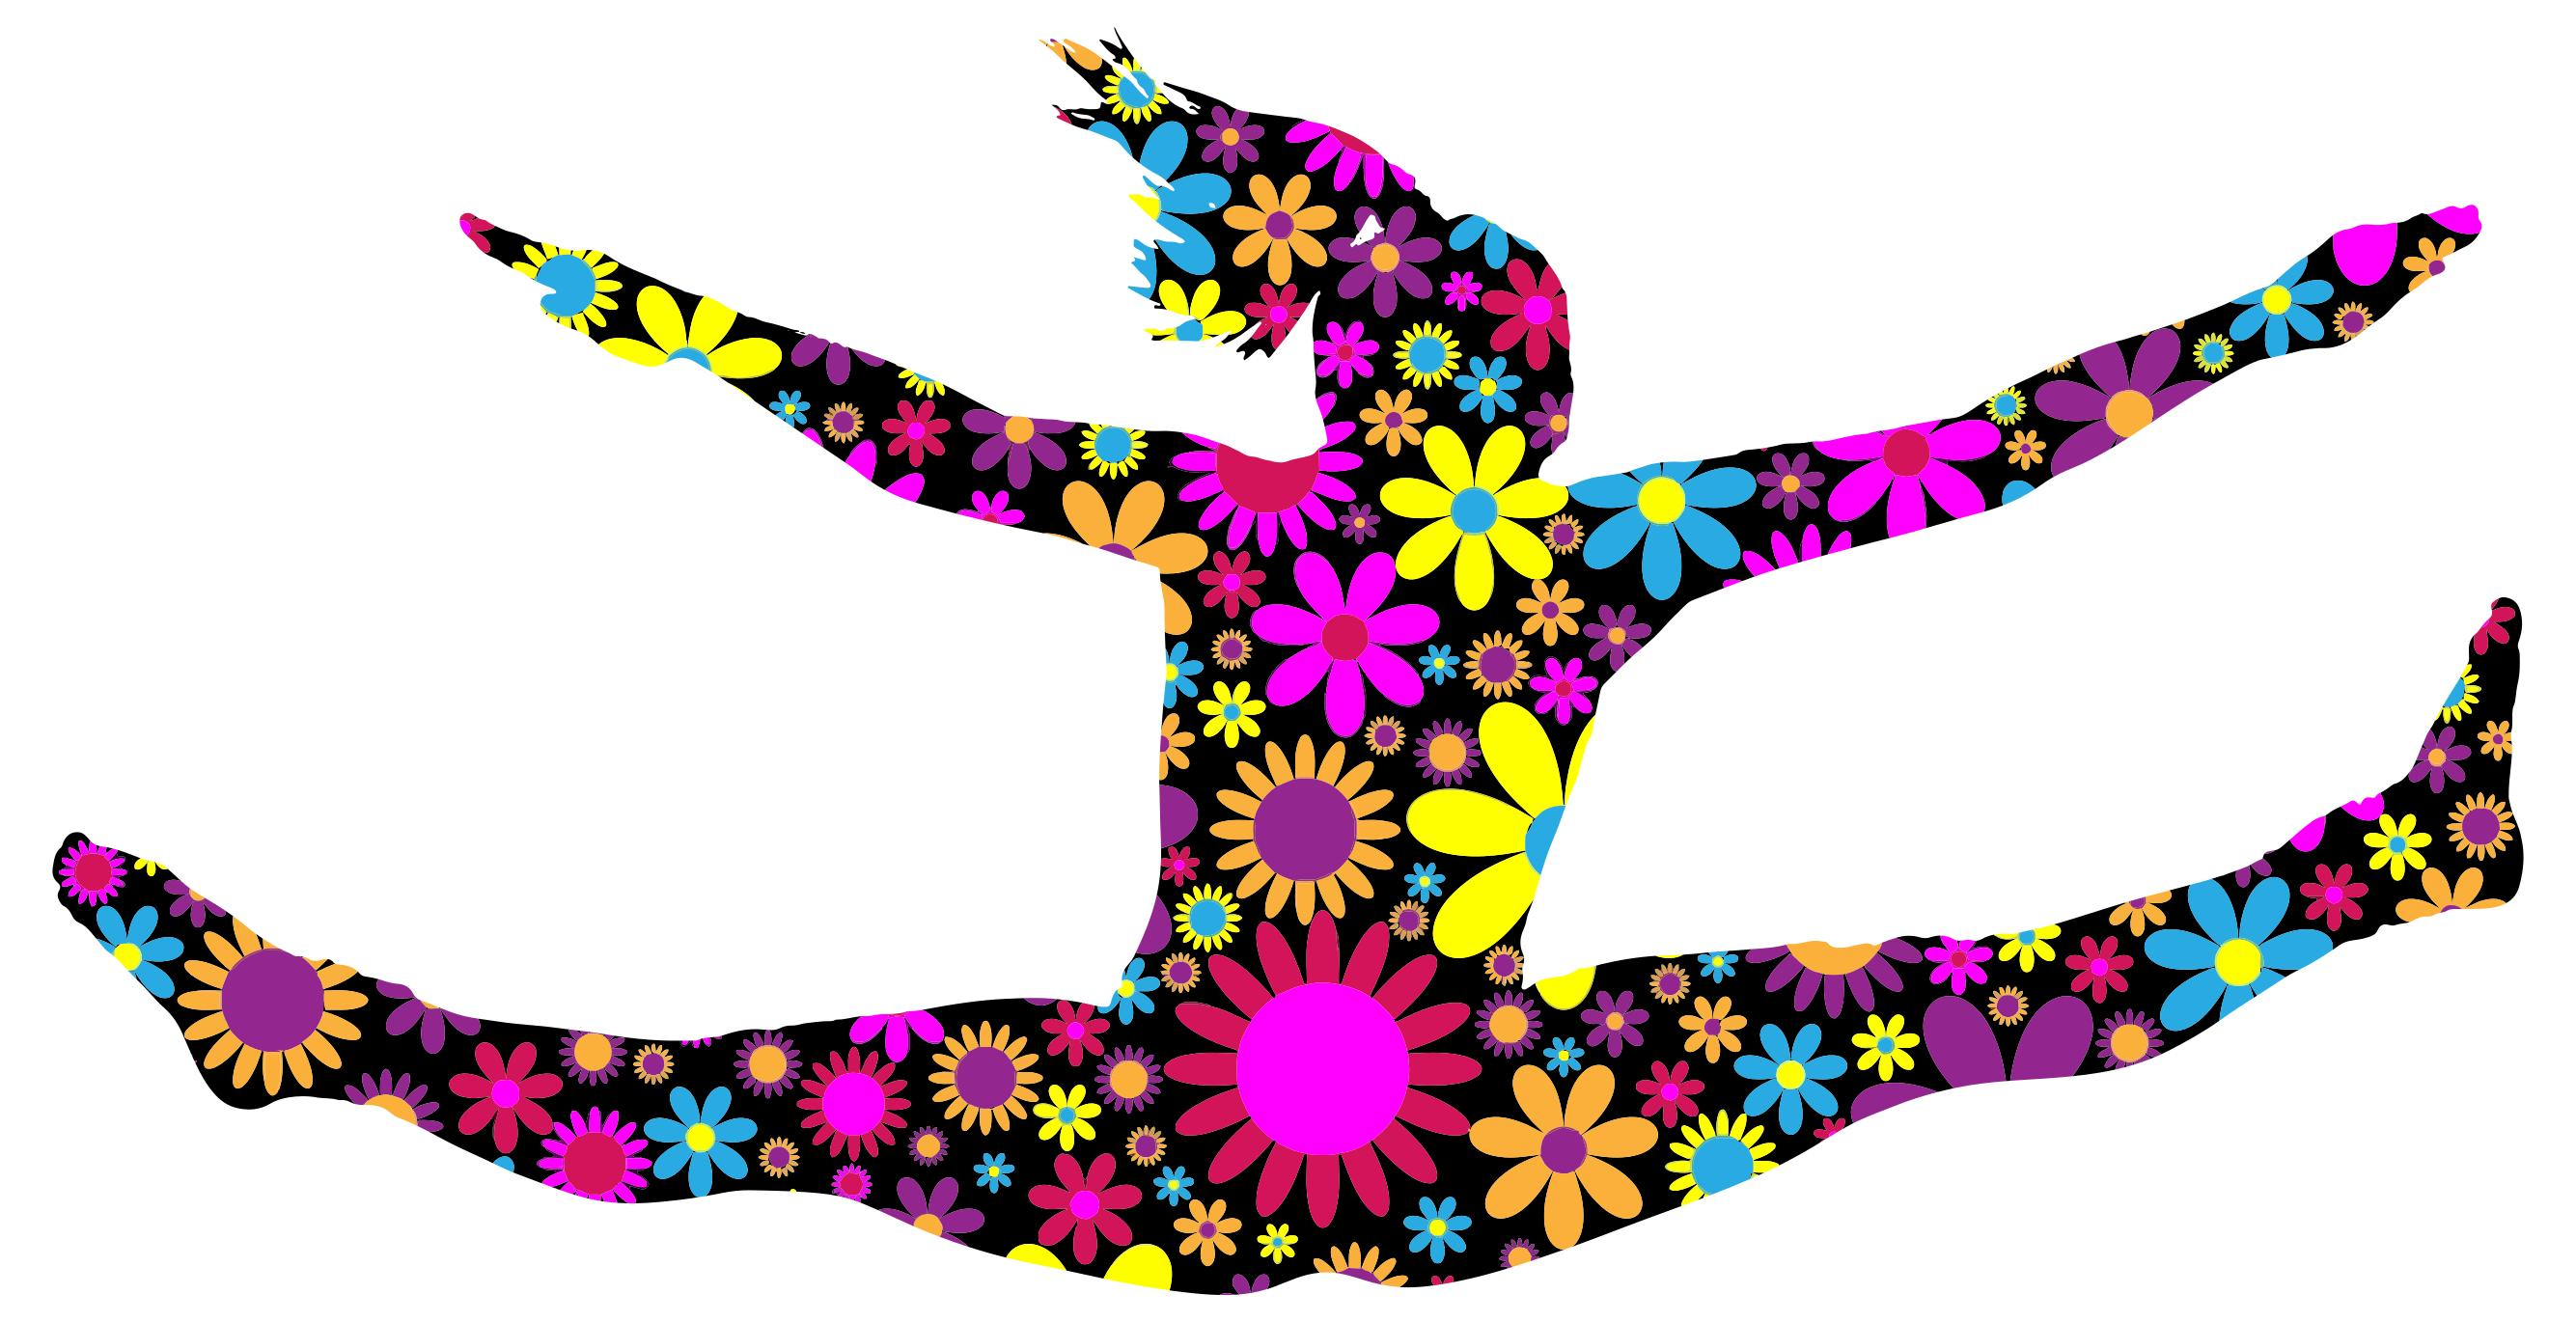 2669x1370 Floral Jumping Girl Silhouette 2 Clipart